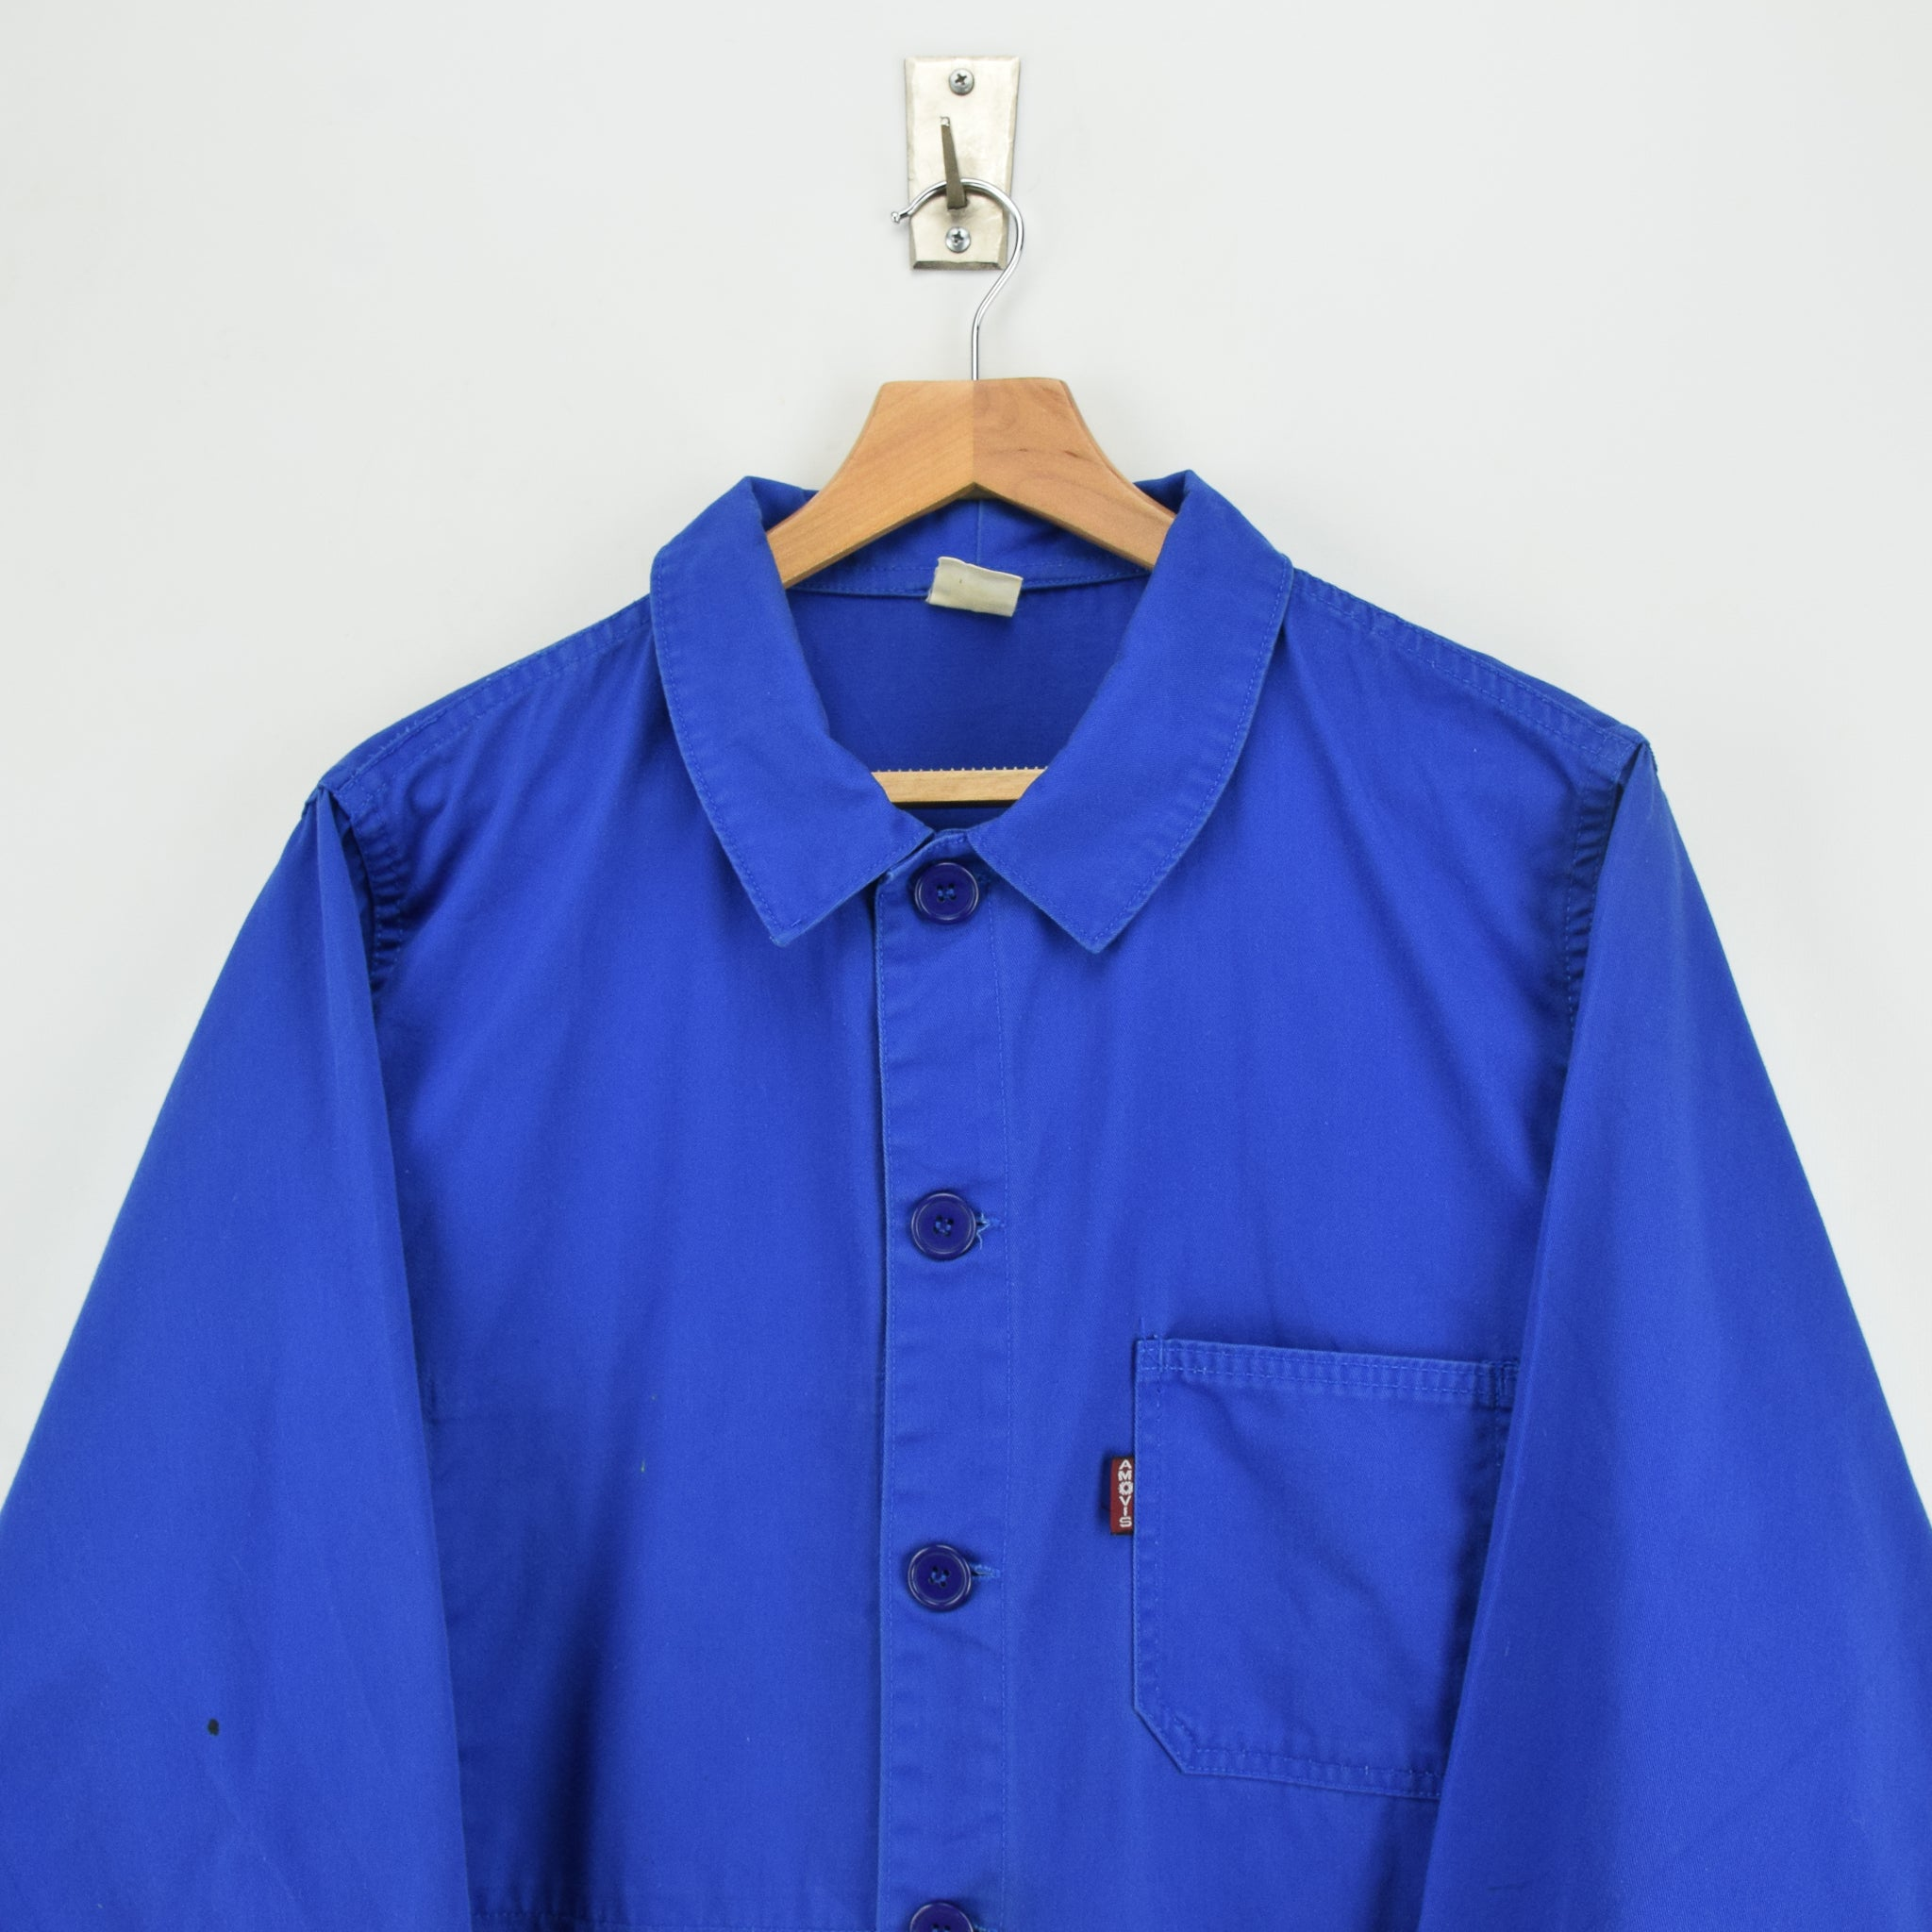 Vintage Bright Blue French Style Worker Sanforized Cotton Chore Jacket L chest